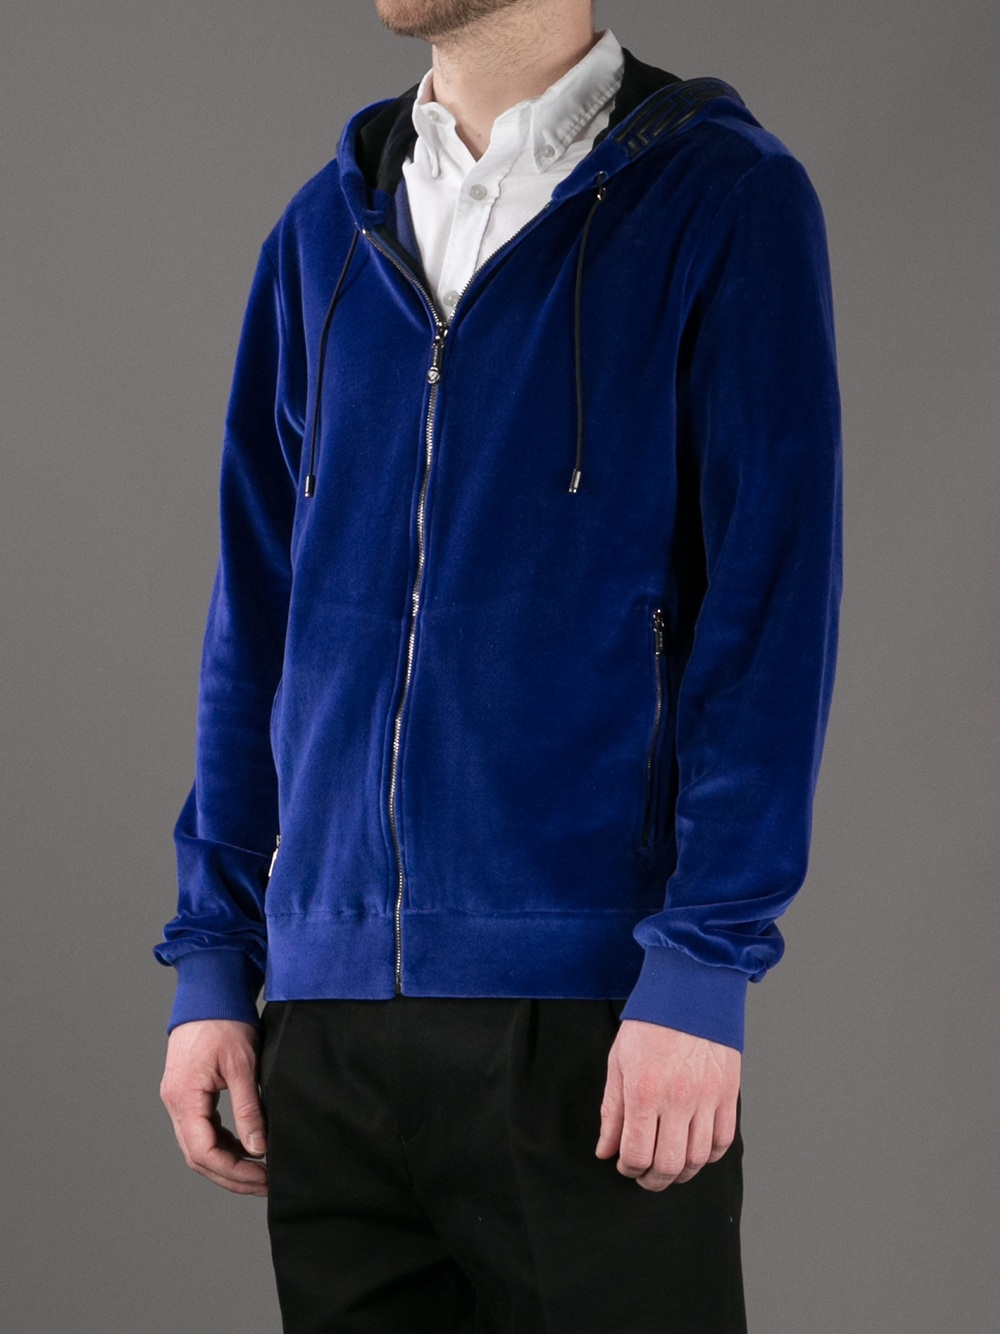 no sale tax great quality special sales The TrueSelf | versace velour tracksuit cheap